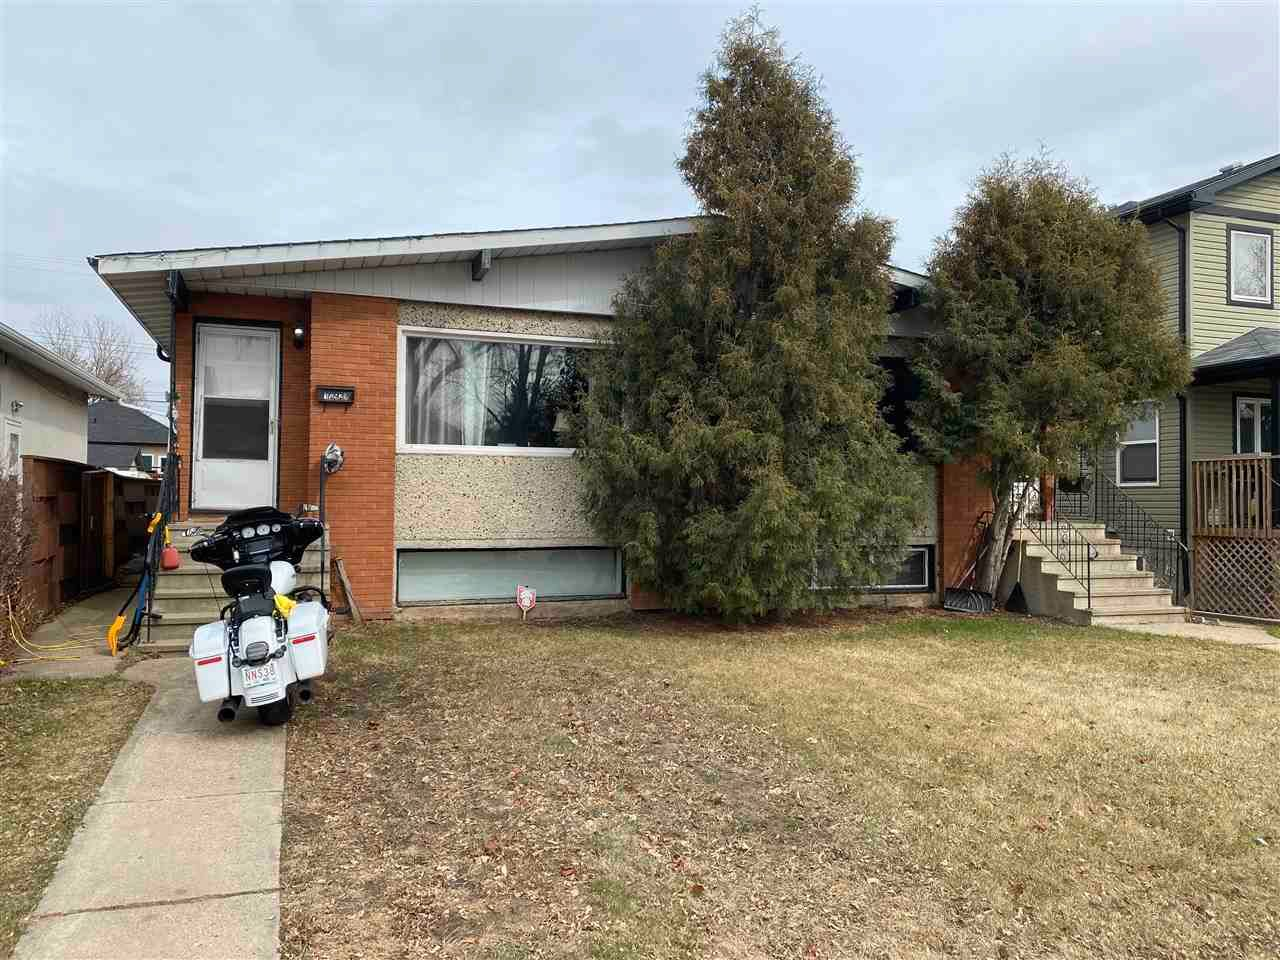 Main Photo: 12927 12929 123 Street in Edmonton: Zone 01 House Duplex for sale : MLS®# E4241287